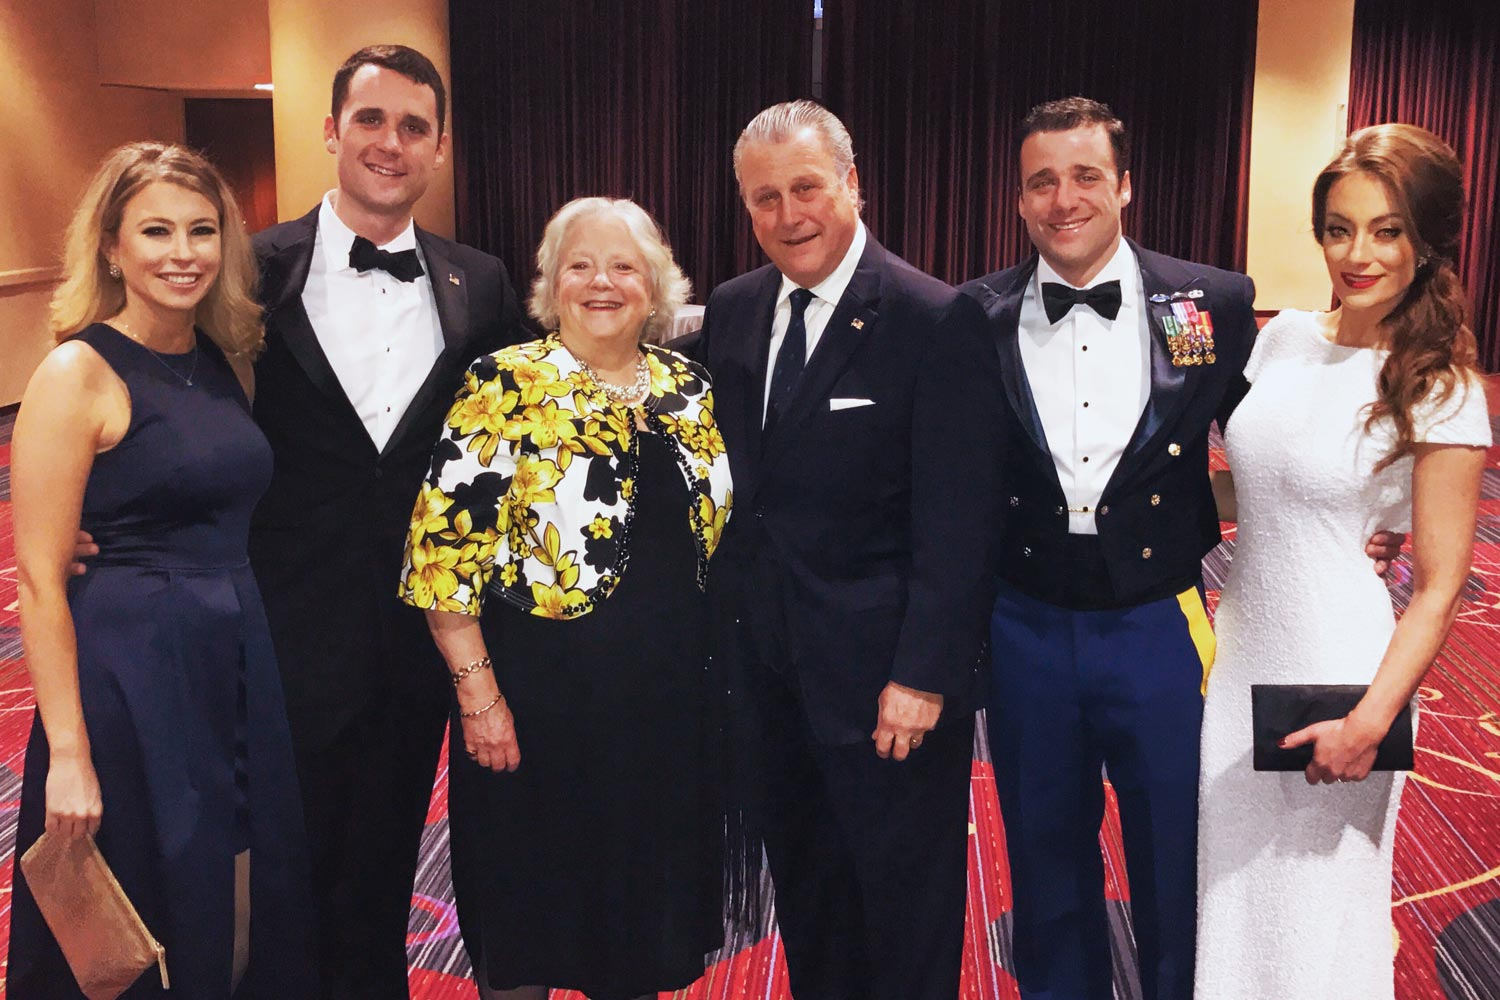 Sargent with his family after receiving the Silver Star. From left to right: Meaghan Doherty, Porter Sargent, Jennifer Sargent, Michael Sargent, Sargent and Kelly Smith.